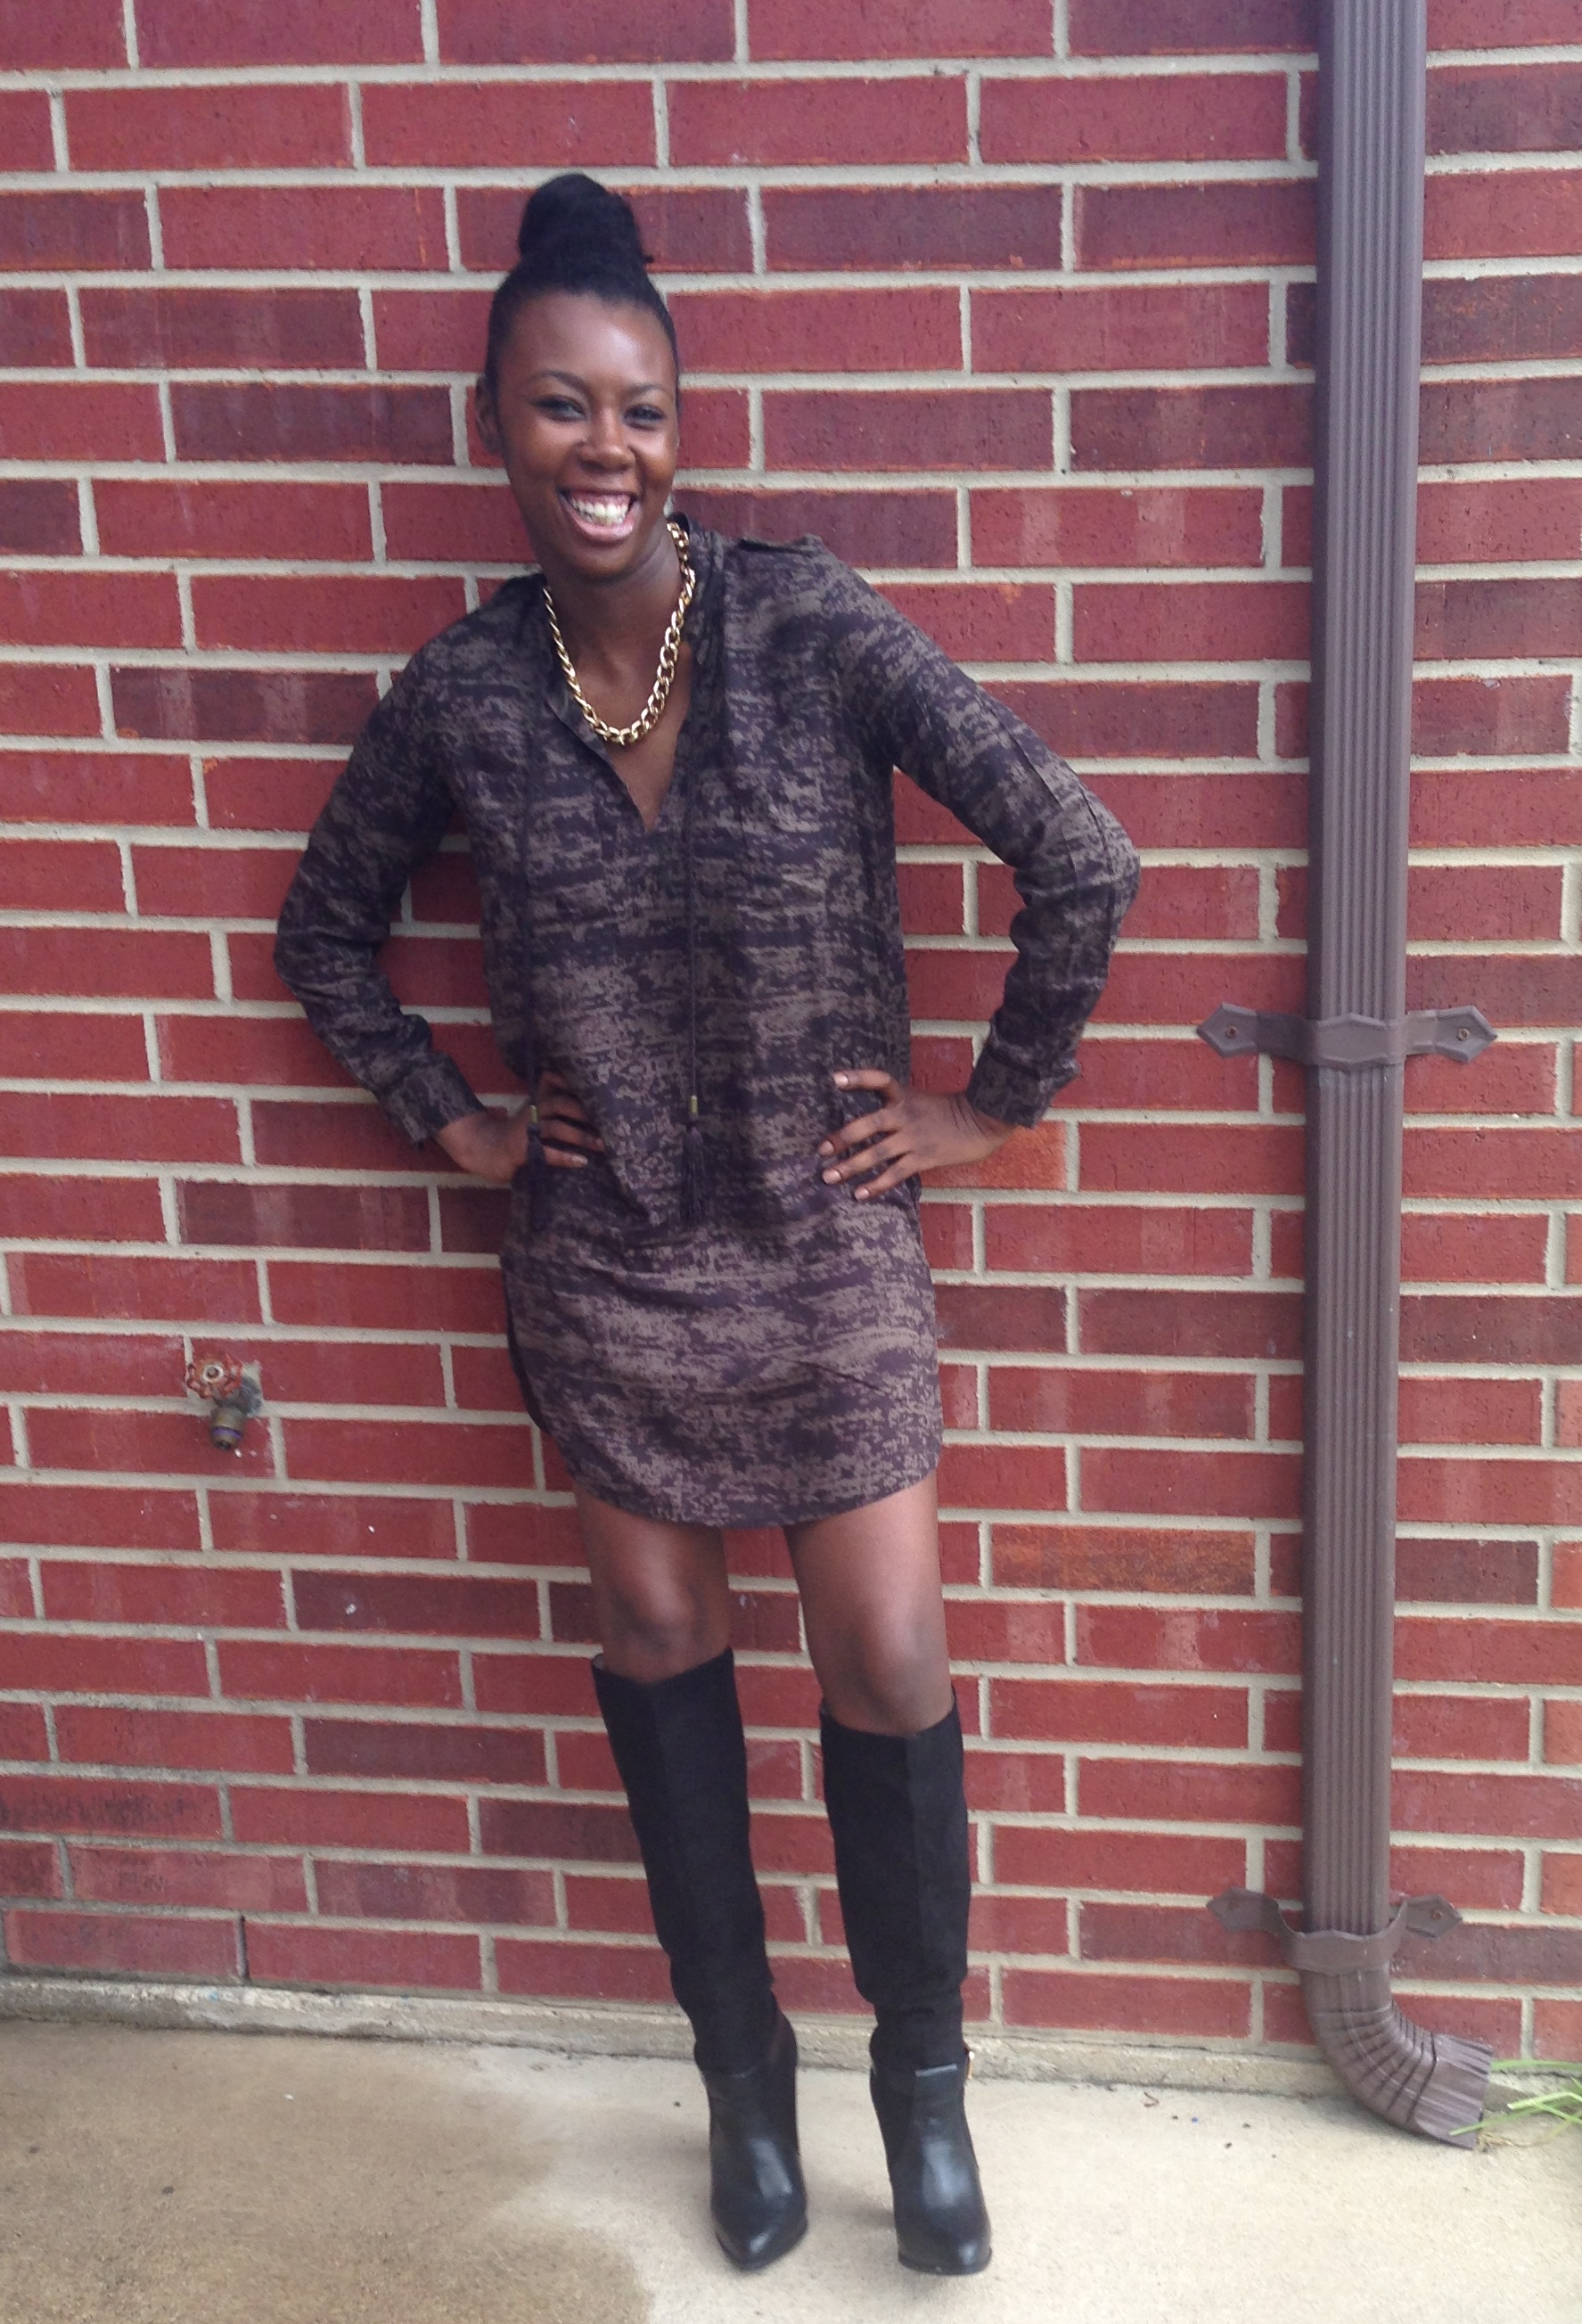 Tasha in HM Dress, T+J Designs necklace and Zara Boots